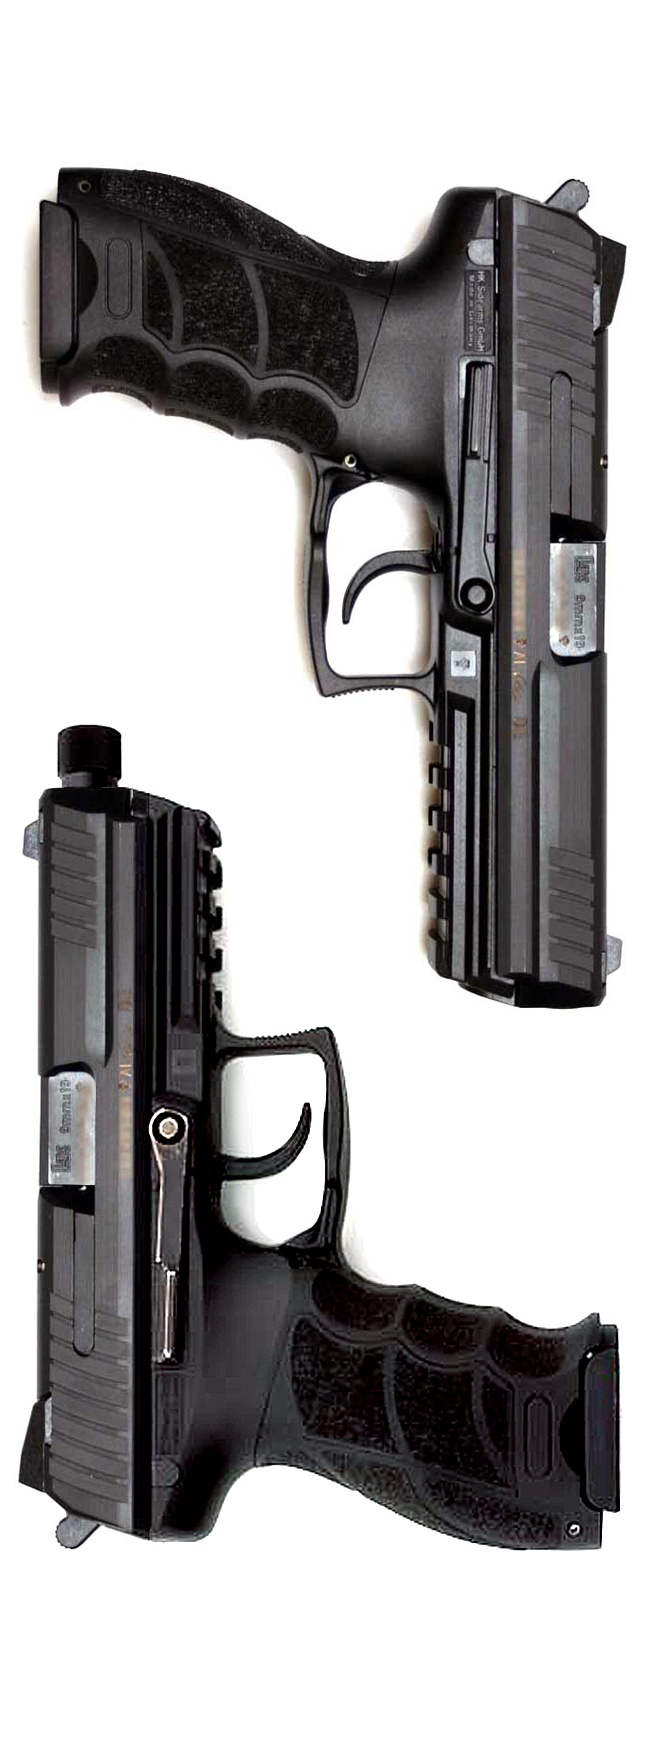 HK P30L (Longslide) and P30 with threaded barrel. John Wick, the movie, features the titular hero, played by Keanu Reeves, carrying one of these with a compensator.